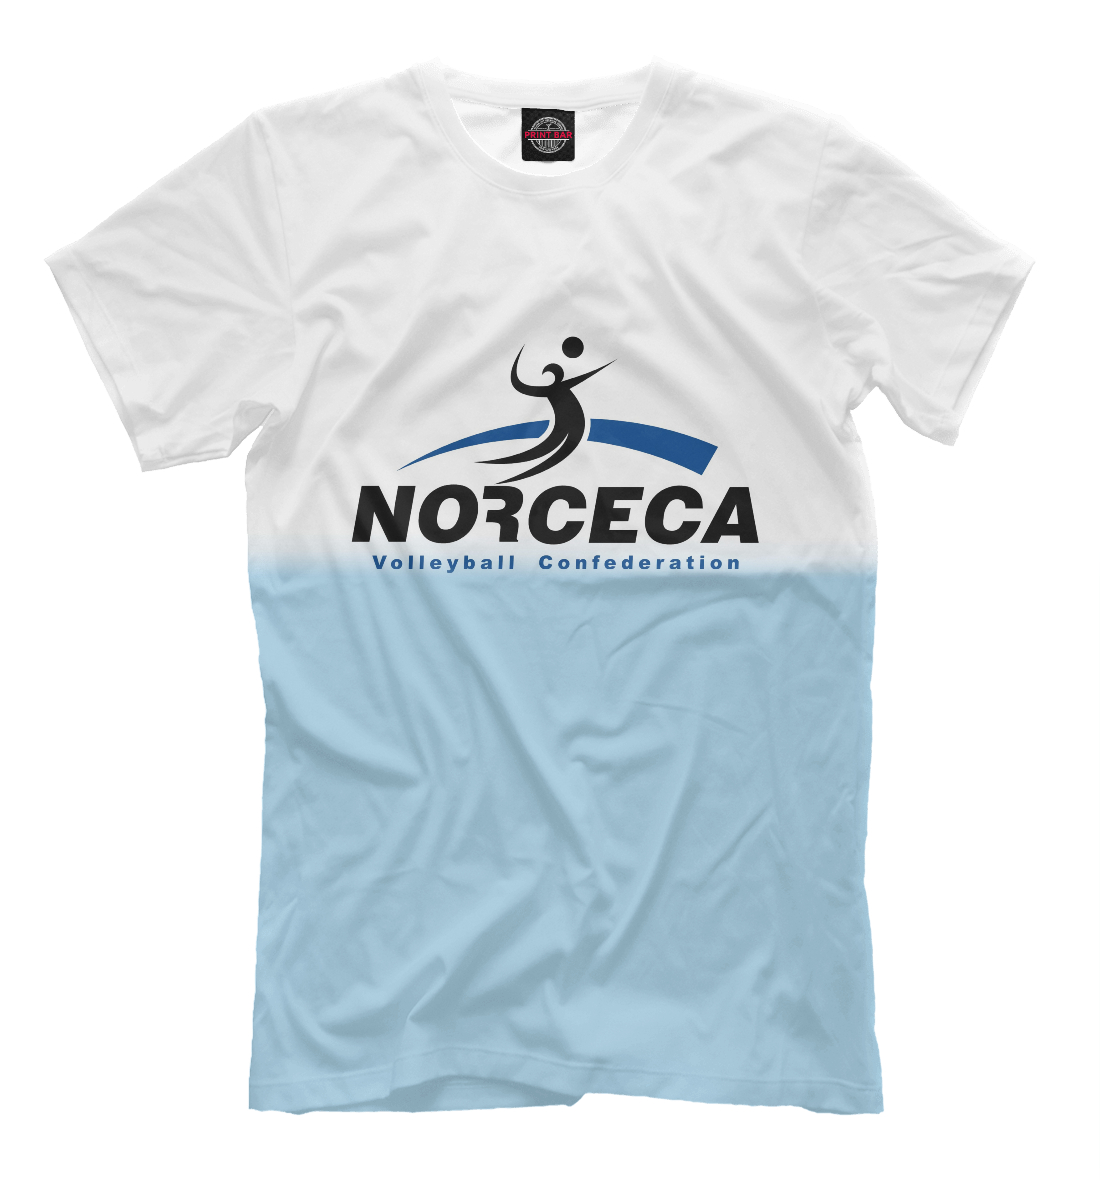 Купить Norceca volleyball confederation, Printbar, Футболки, VLB-281557-fut-2